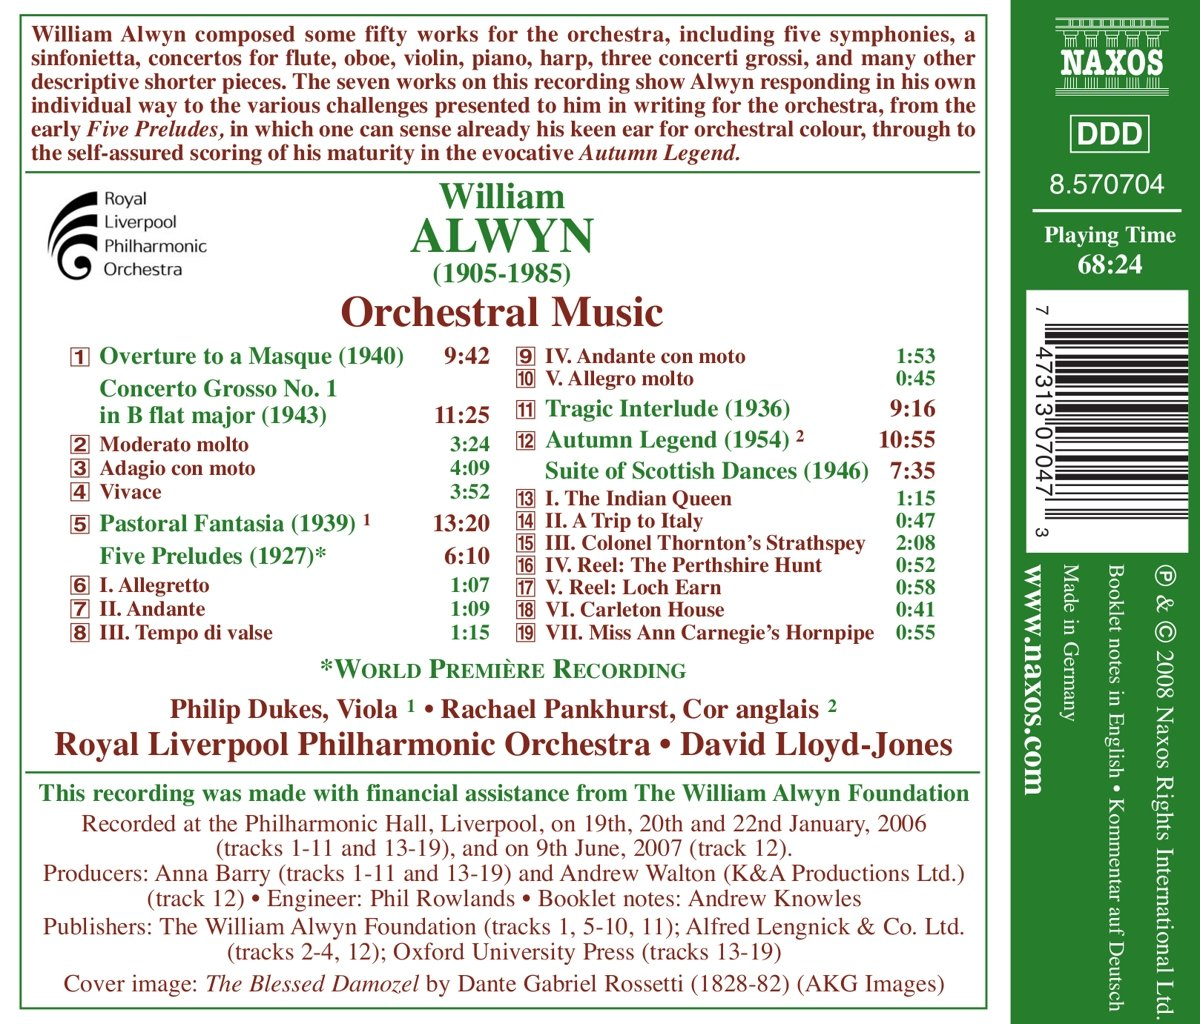 Orchestral Music by Naxos